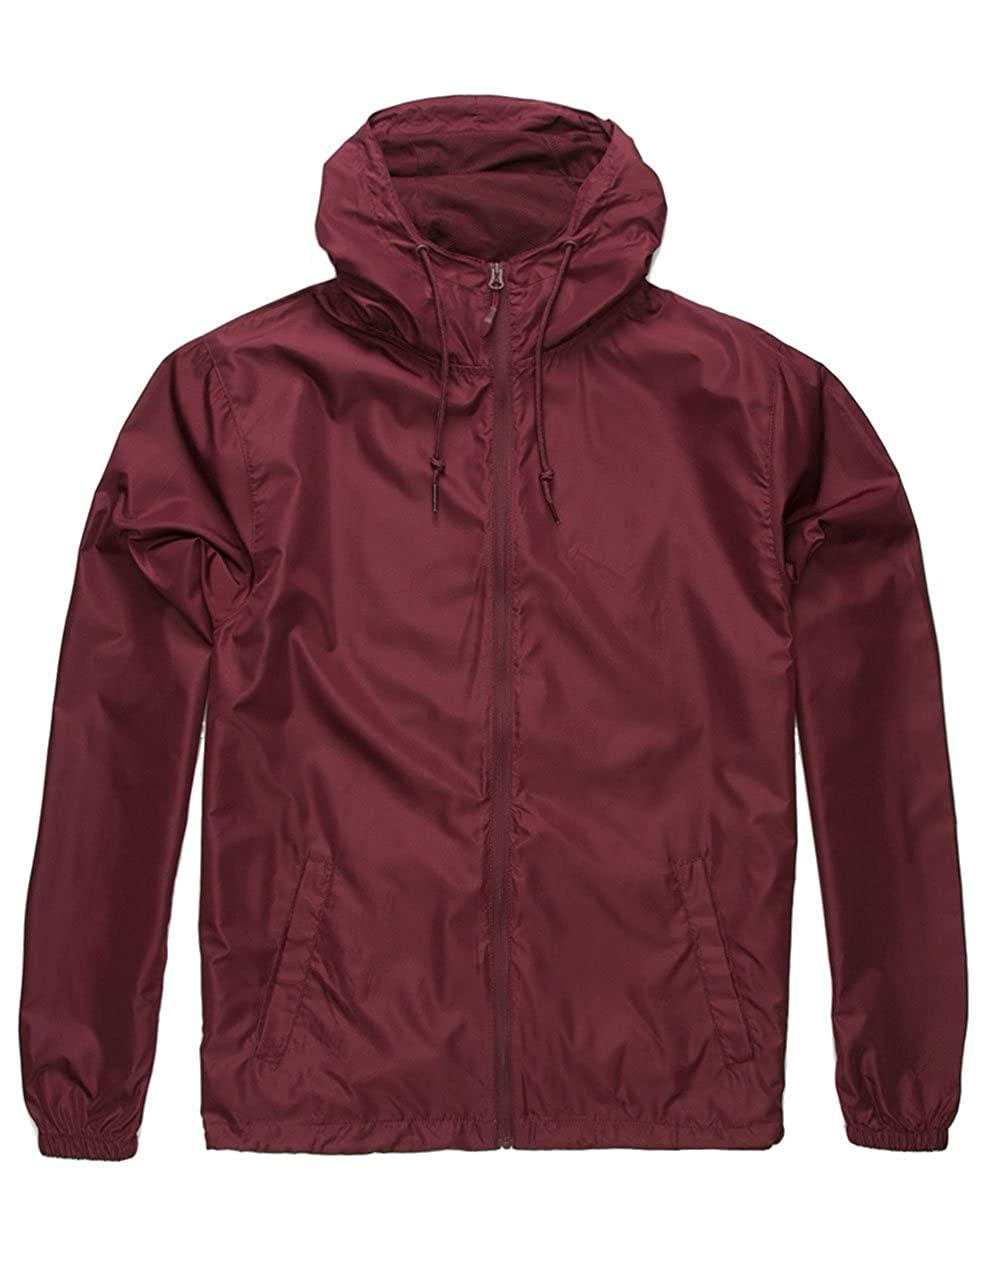 Independent Trading Co............. EXP54LWZ Light Weight Windbreaker Zip Jacket